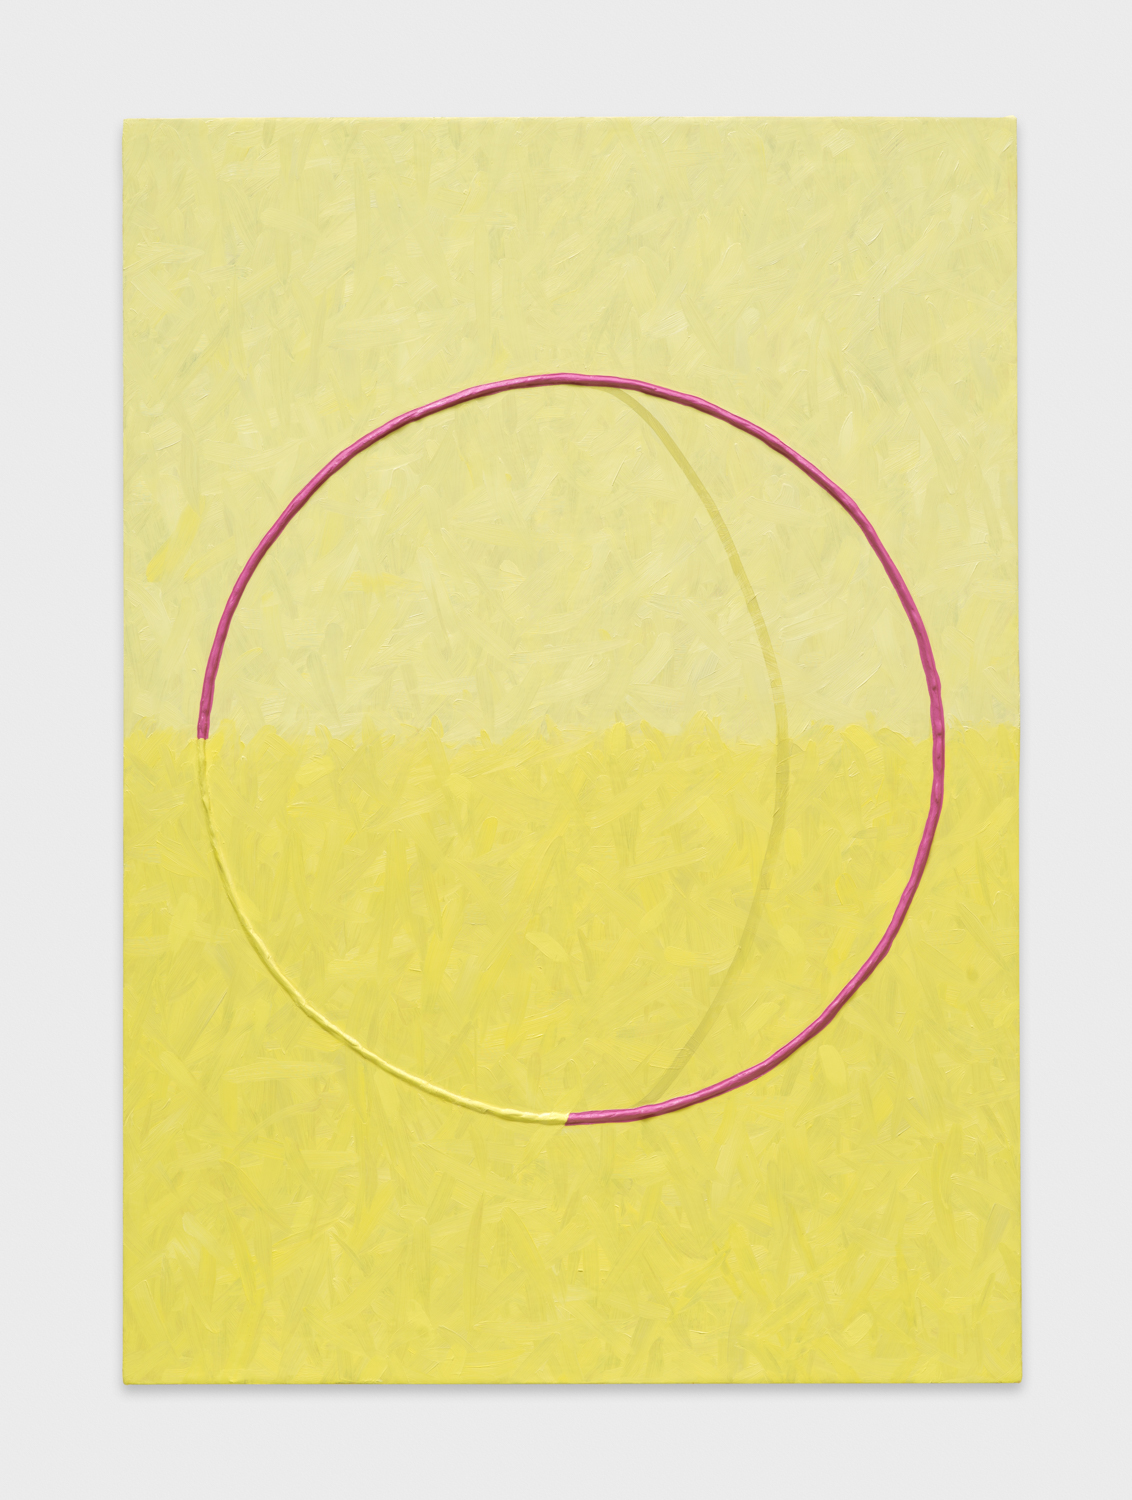 Alex Olson  Lure (4)  2014 Oil and modeling paste on linen 41h x 29w in AO157